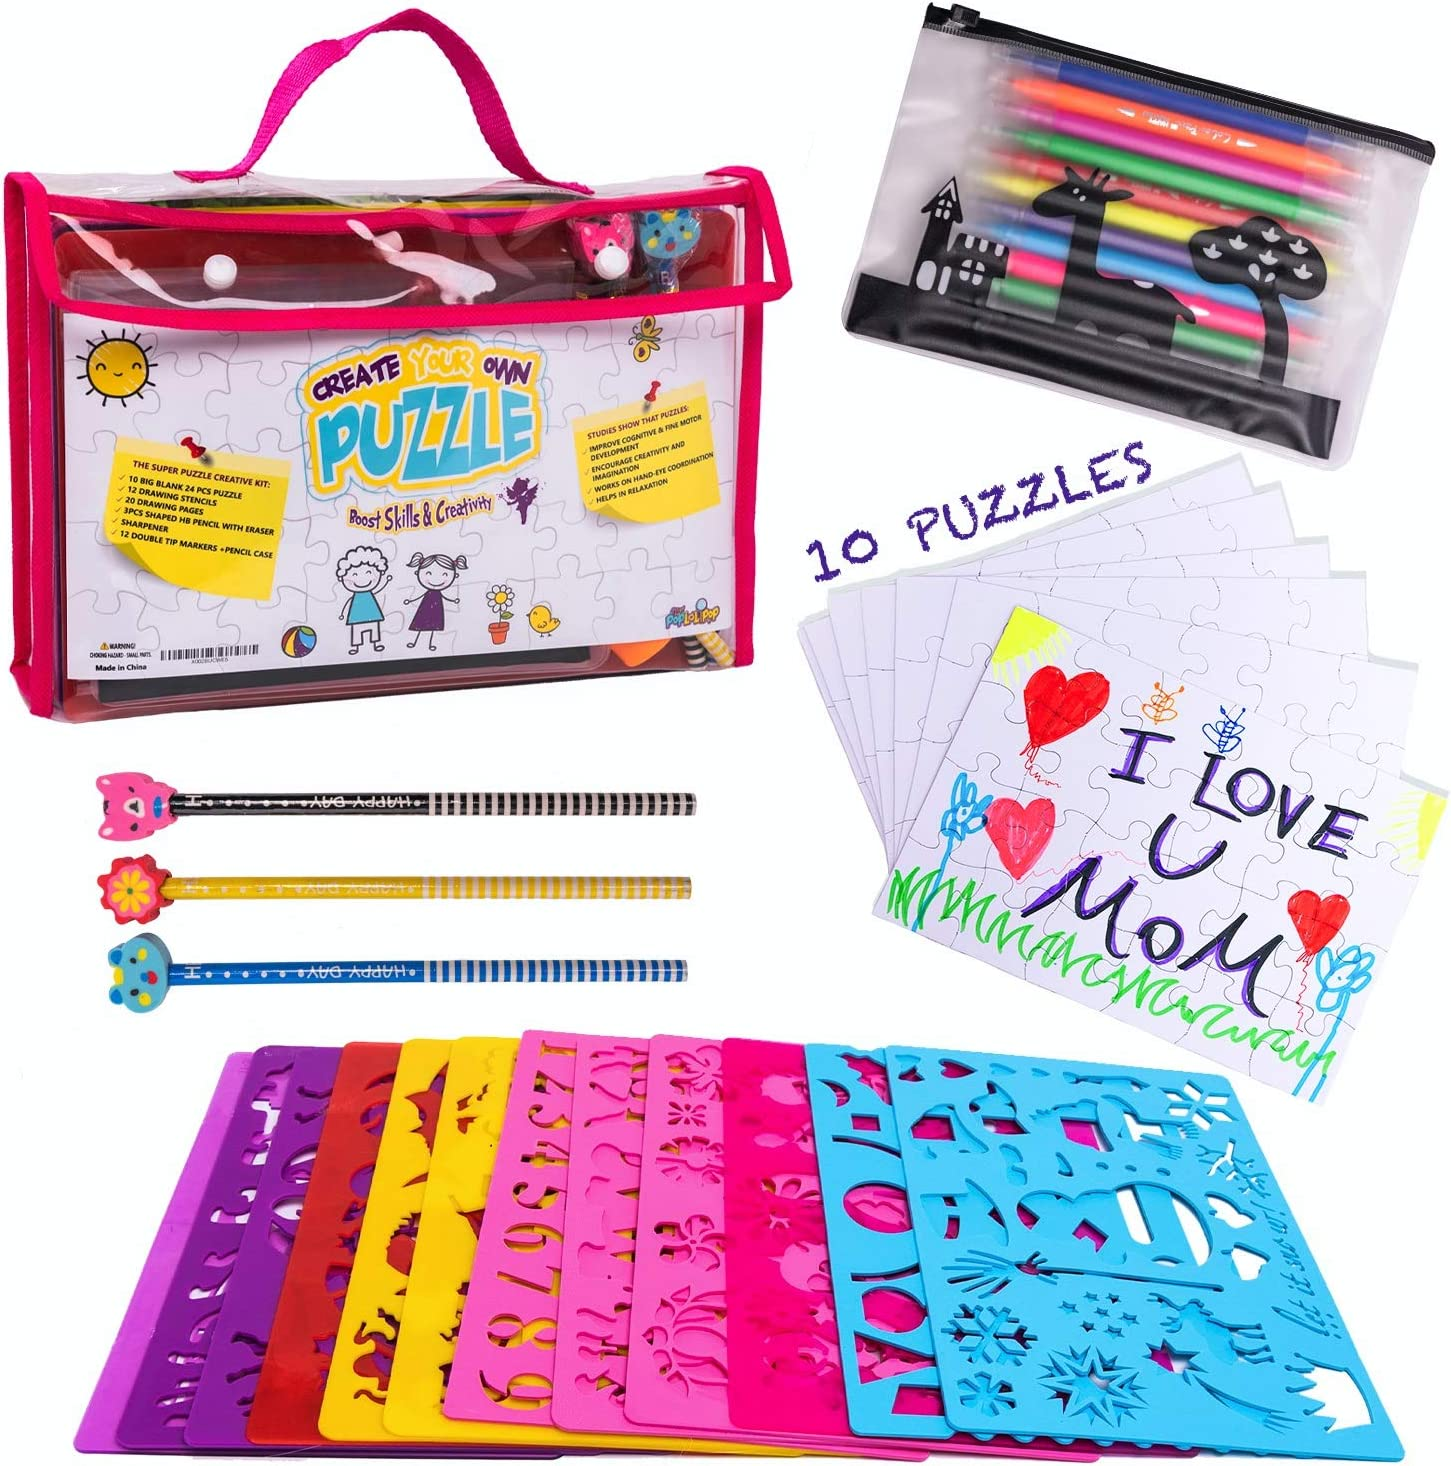 Coloring Kit Combo Kids Art /& Crafts Creativity Painting Gift Set Drawing Book